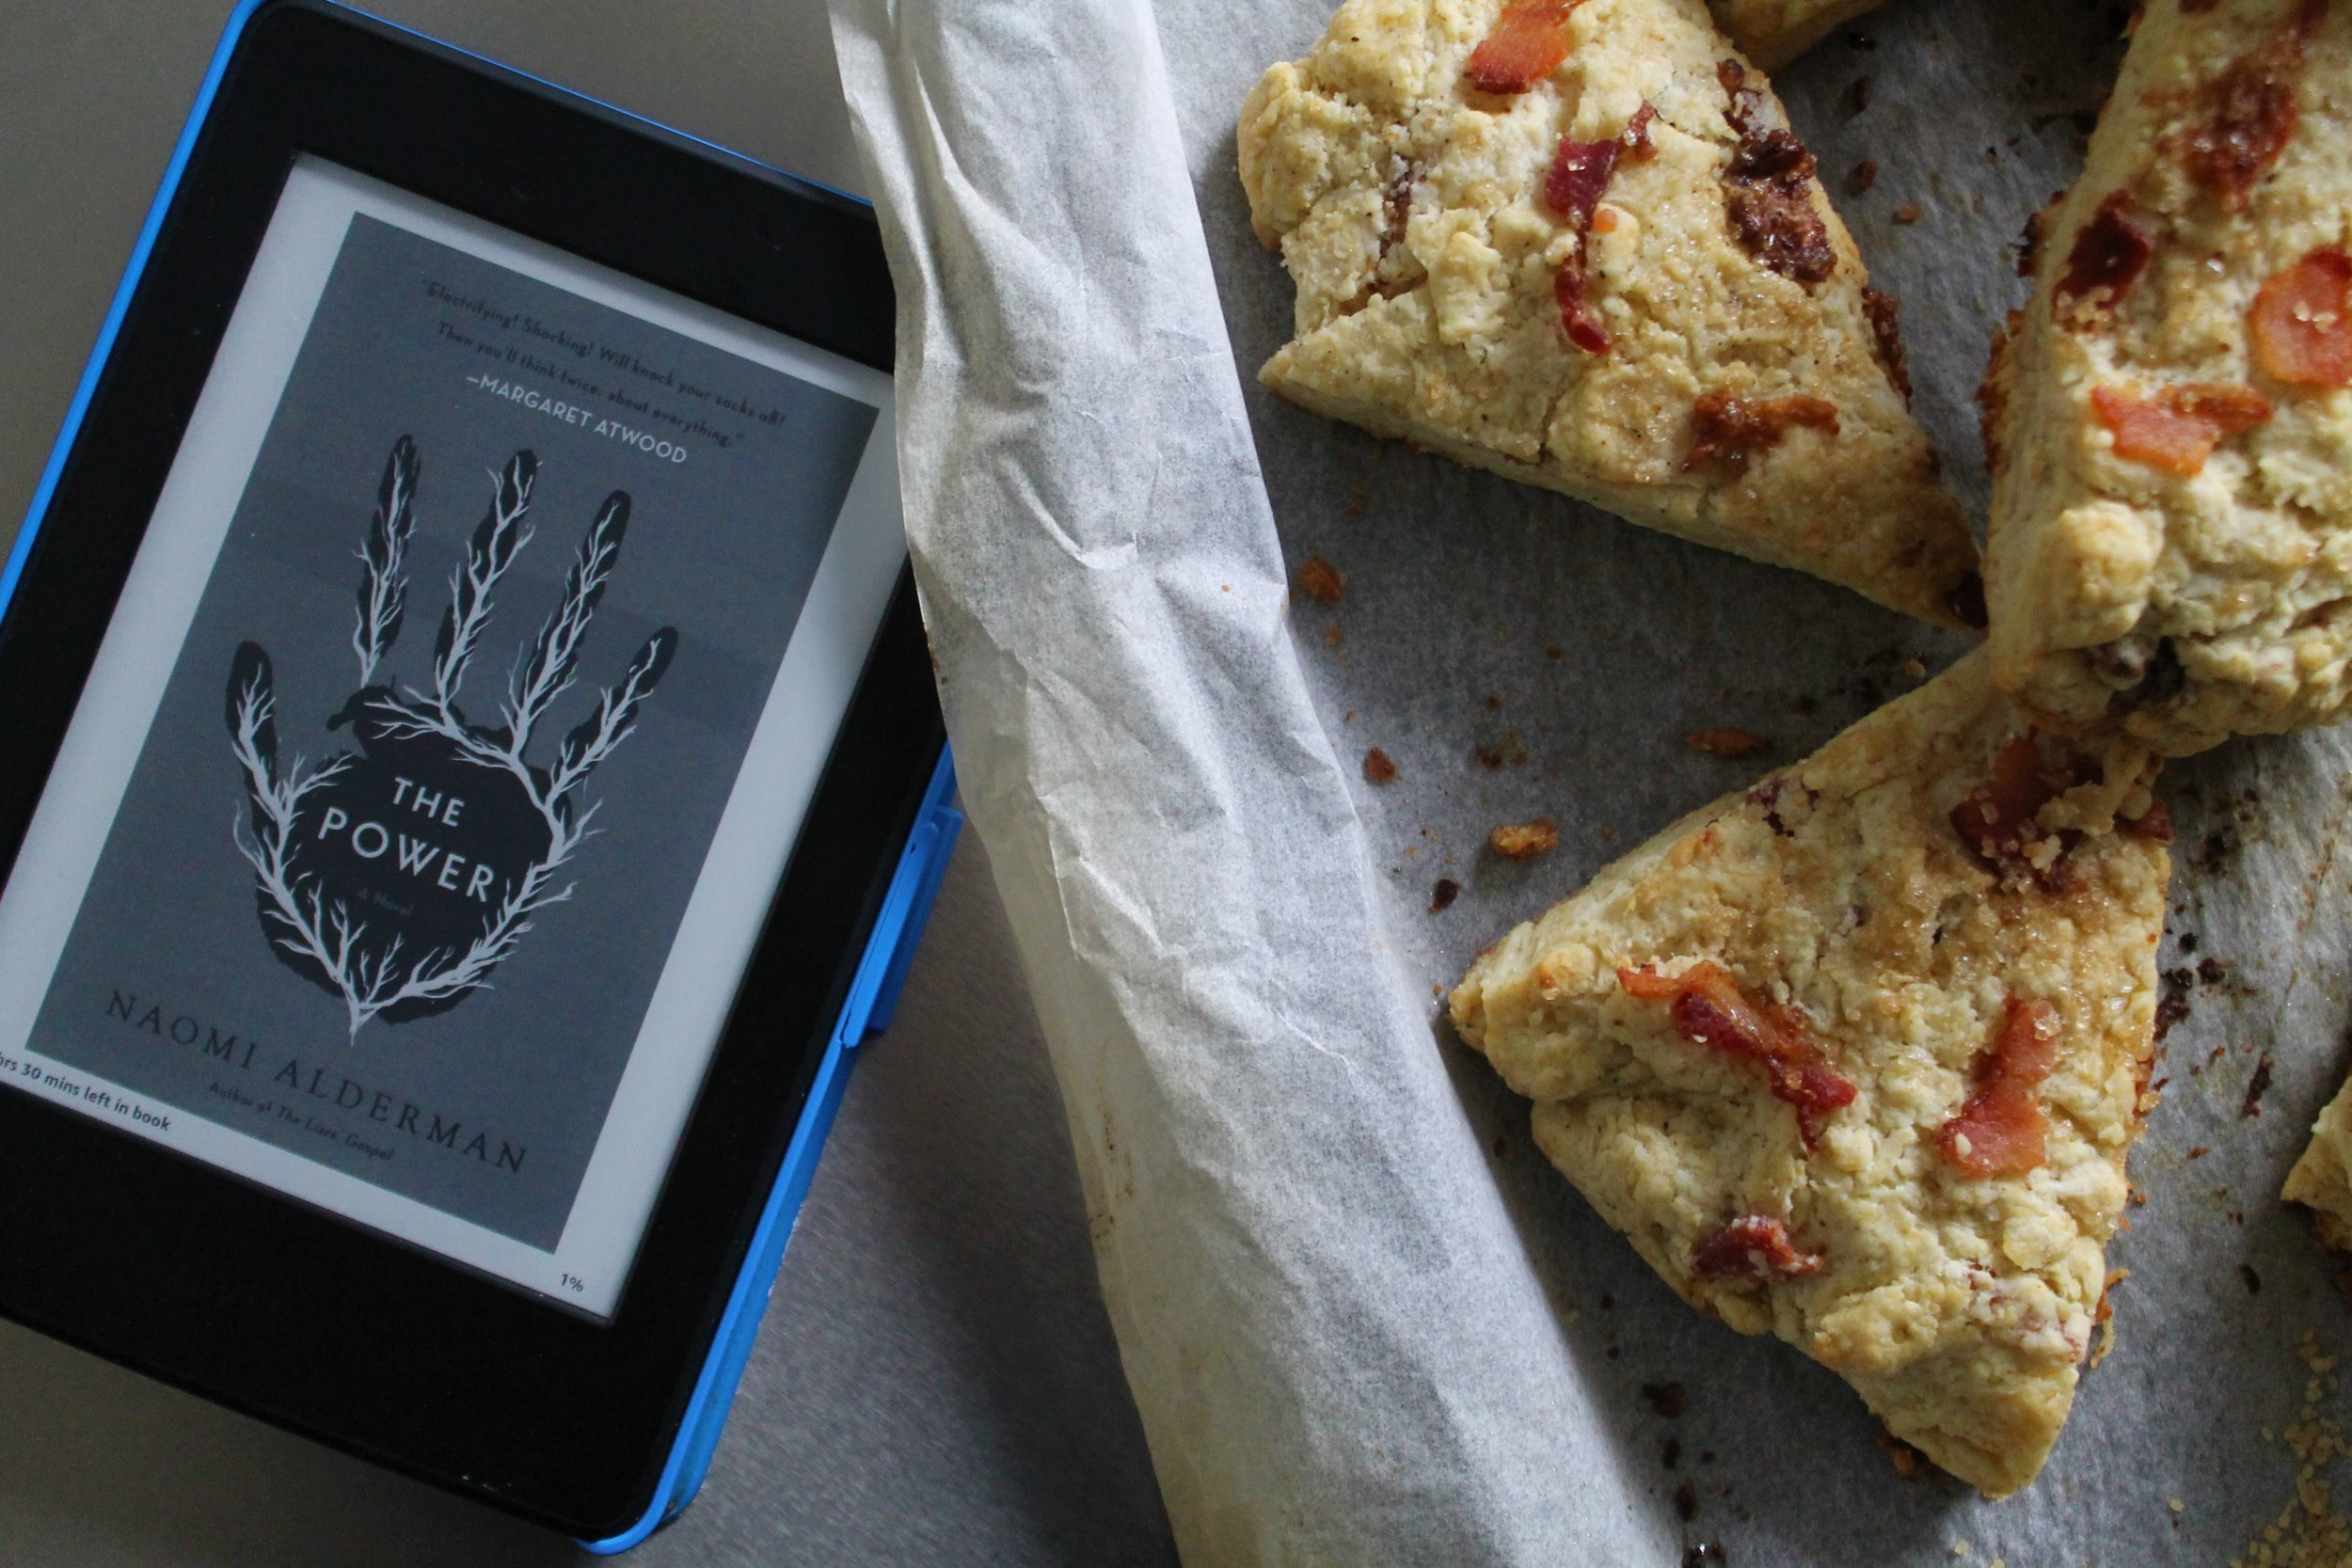 Smoked Maple Scones and The Power by Naomi Alderman